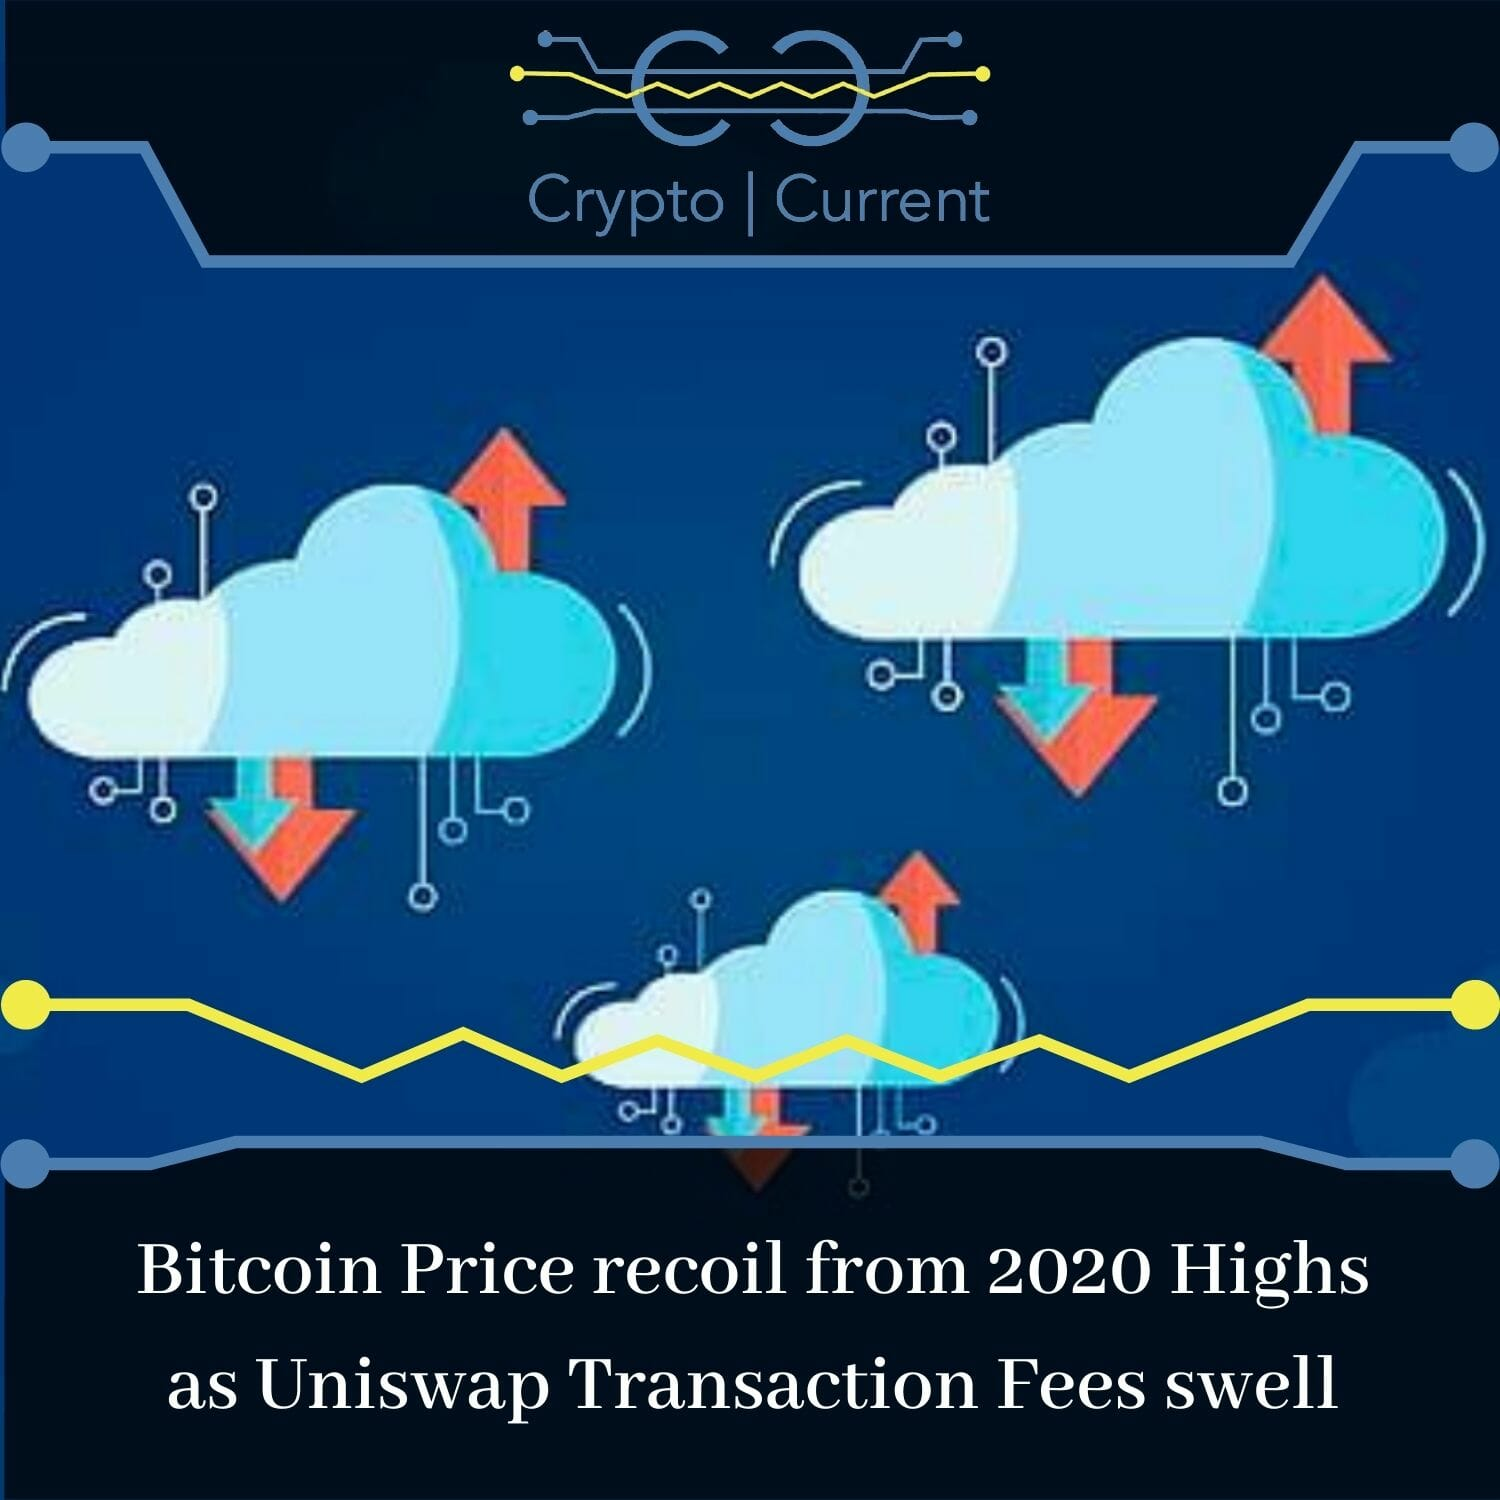 Bitcoin Price recoil from 2020 Highs as Uniswap Transaction Fees swell